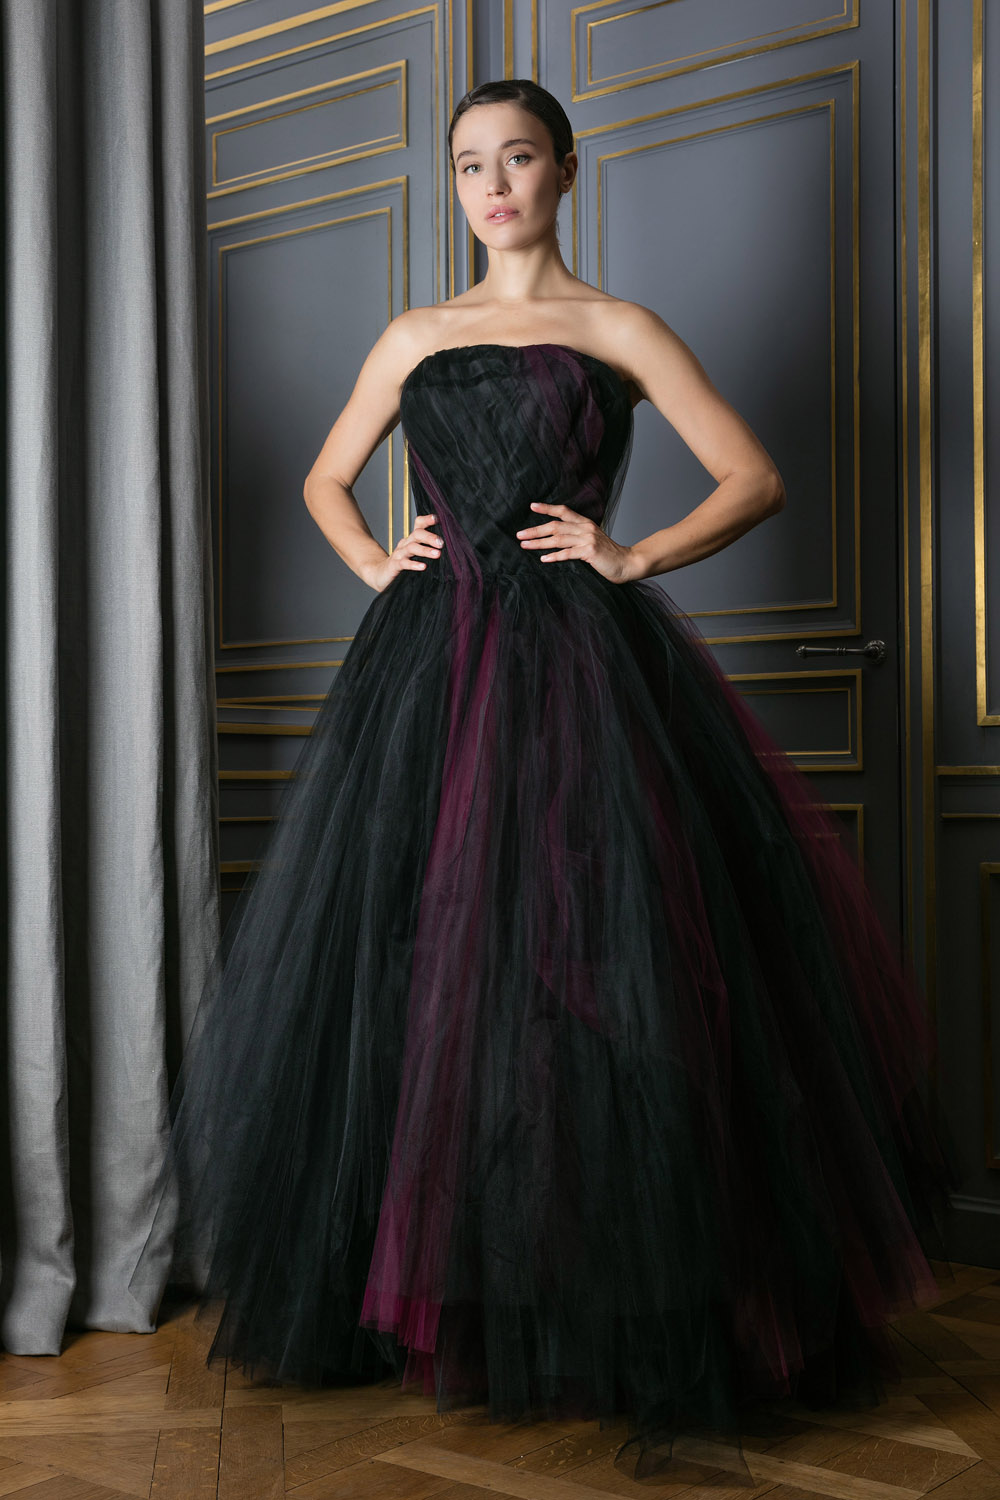 e75666ec34469 boutiquelessuites.com - LesSuitesOnline buy Oscar De La renta -  Floor-length strapless black with purple gown on our website